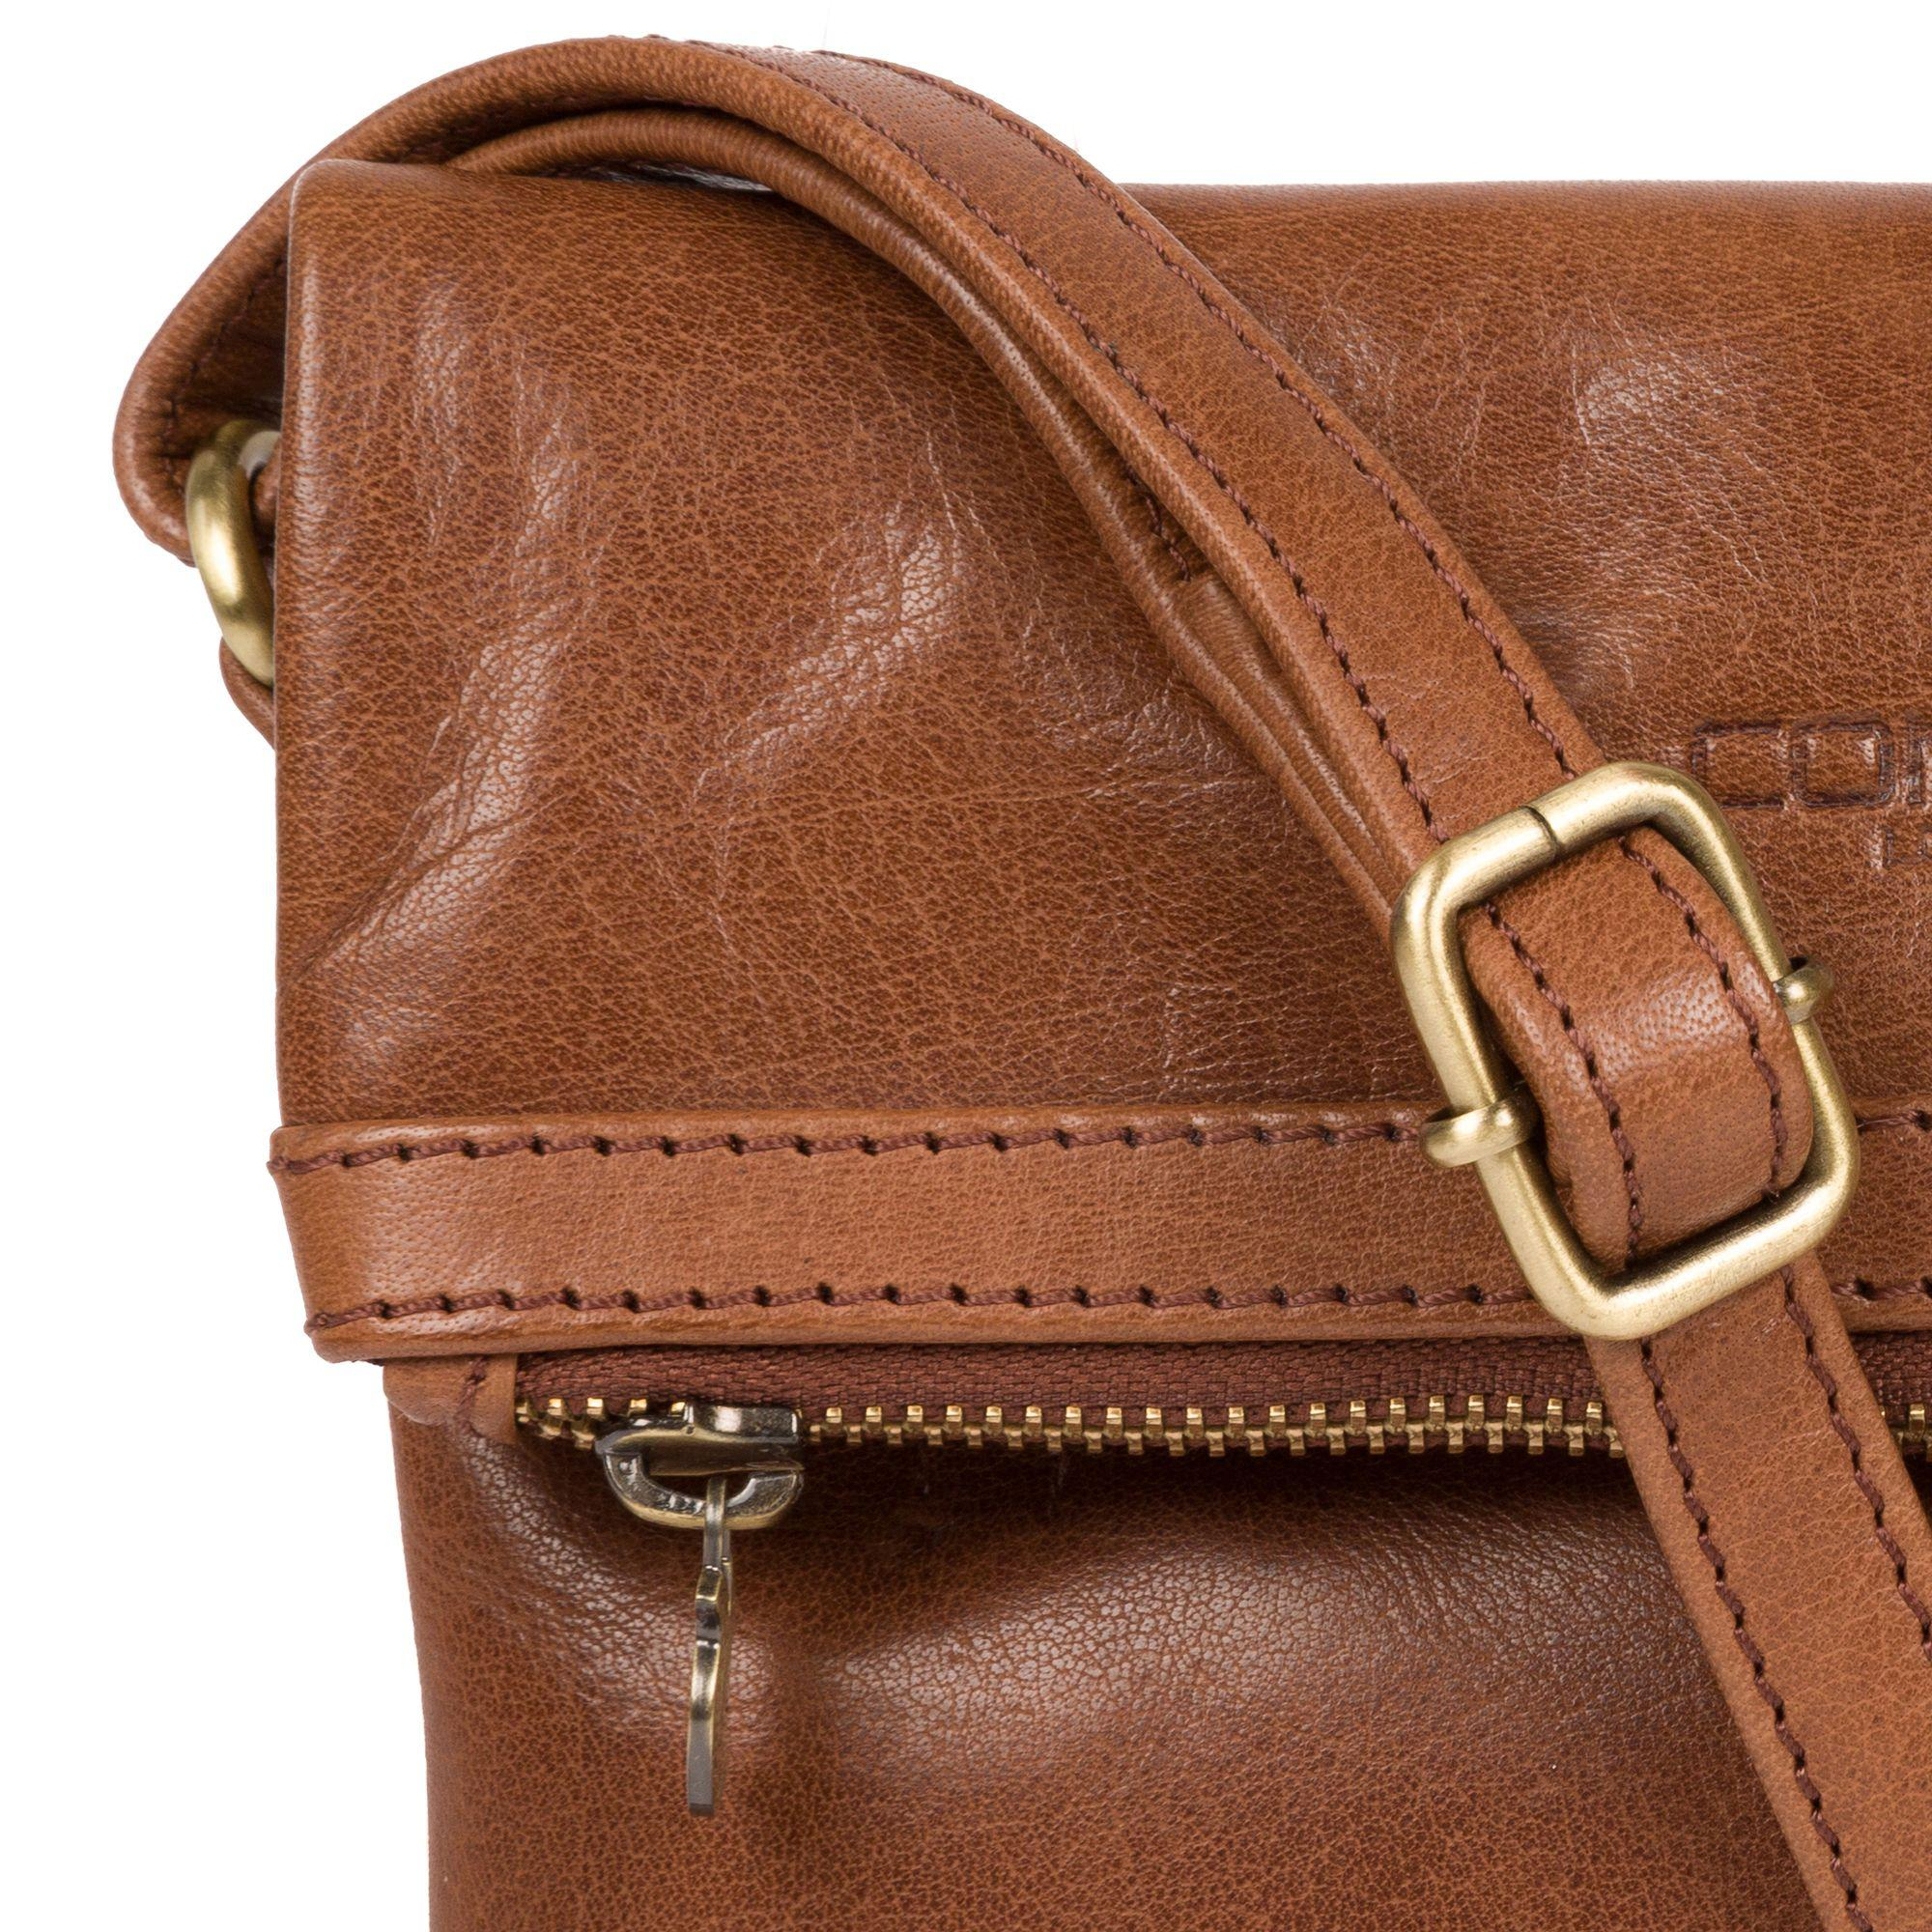 87186d92c5 Conkca London - Conker Brown  emin  Leather Cross-body Bag - Lyst. View  fullscreen